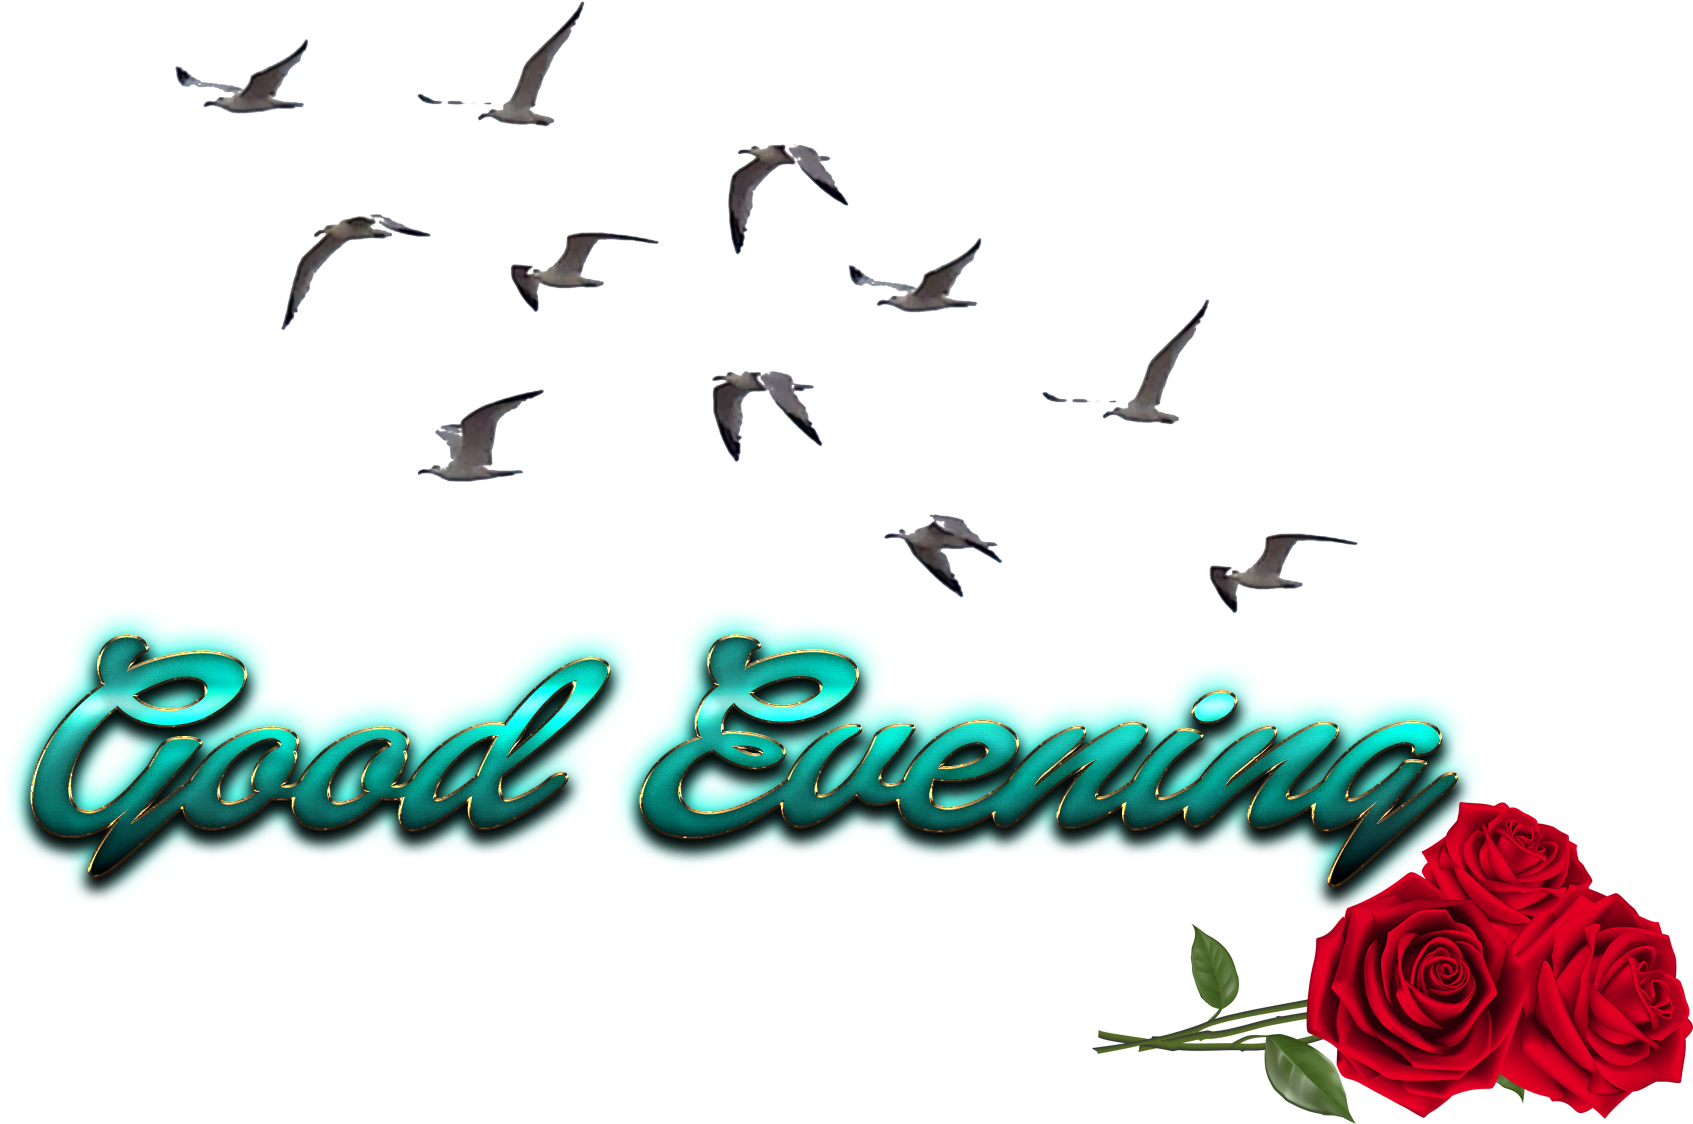 Download Good Evening Free Png Image.